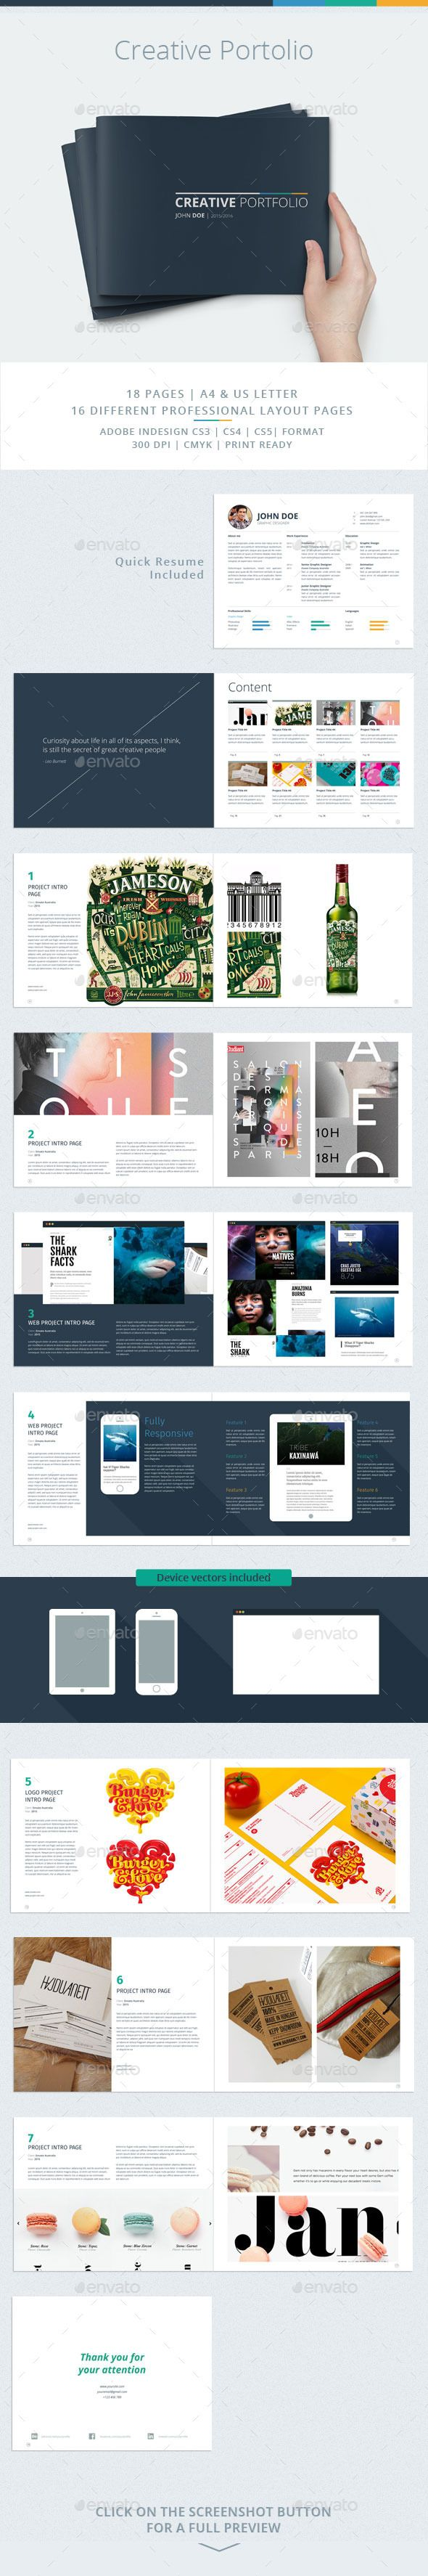 Creative Portfolio is a 18 pages Indesign brochure template available in both A4 and US letter sizes. This template is for use as a portfolio / book / extended resume / agency or studio brochure. Download: http://graphicriver.net/item/creative-portfolio/11001973?ref=ksioks